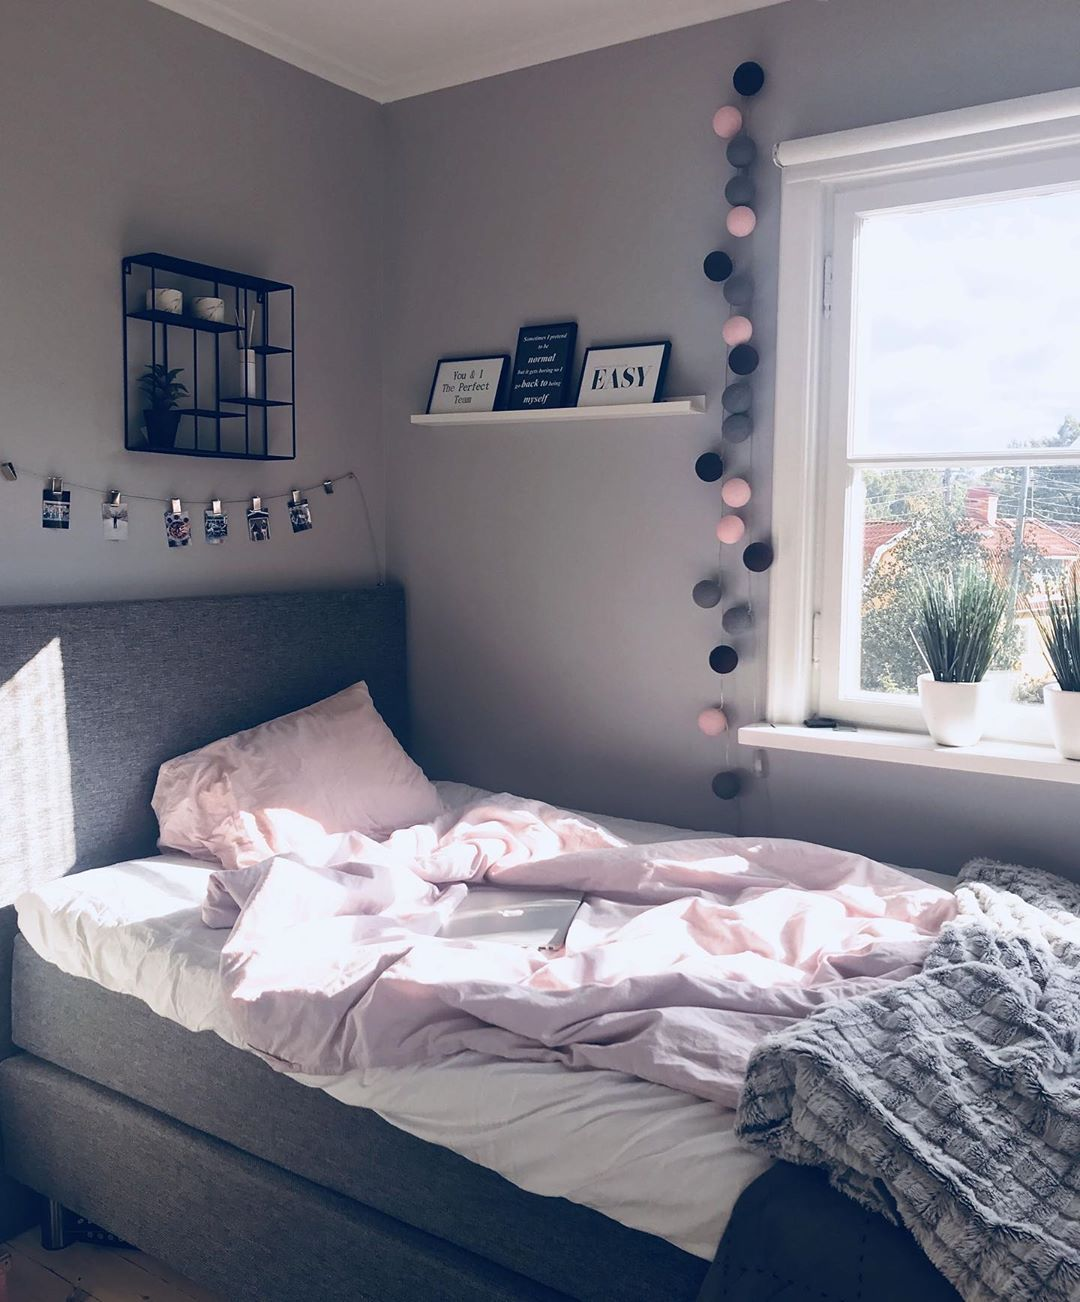 "Photo of DORMSTATE on Instagram: ""COZY . . #art #wallart #college #collegekid #collegelife #wallartdecor #artwork #posters #tapestry #new #trending #dorm #dorms #dormroom…"""